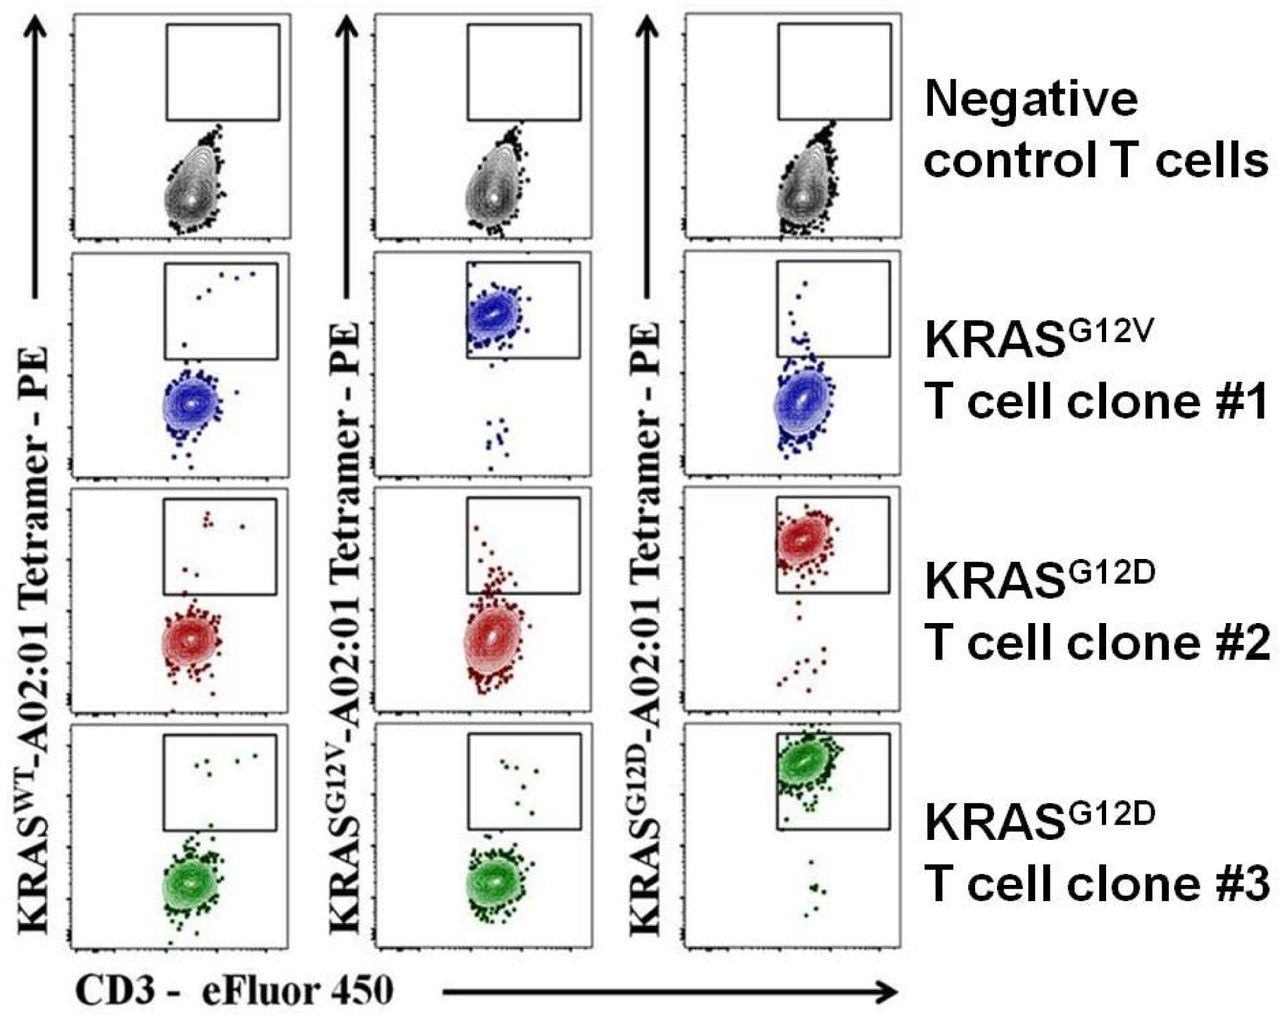 Tetramer analysis of HLA-A*02:01-restricted KRAS G12V/D specific T cell clones. Monoclonal CD8+ T cells (blue) were stained strongly by the KRAS G12V /A*02:01 tetramer (99.1%) and minimally (